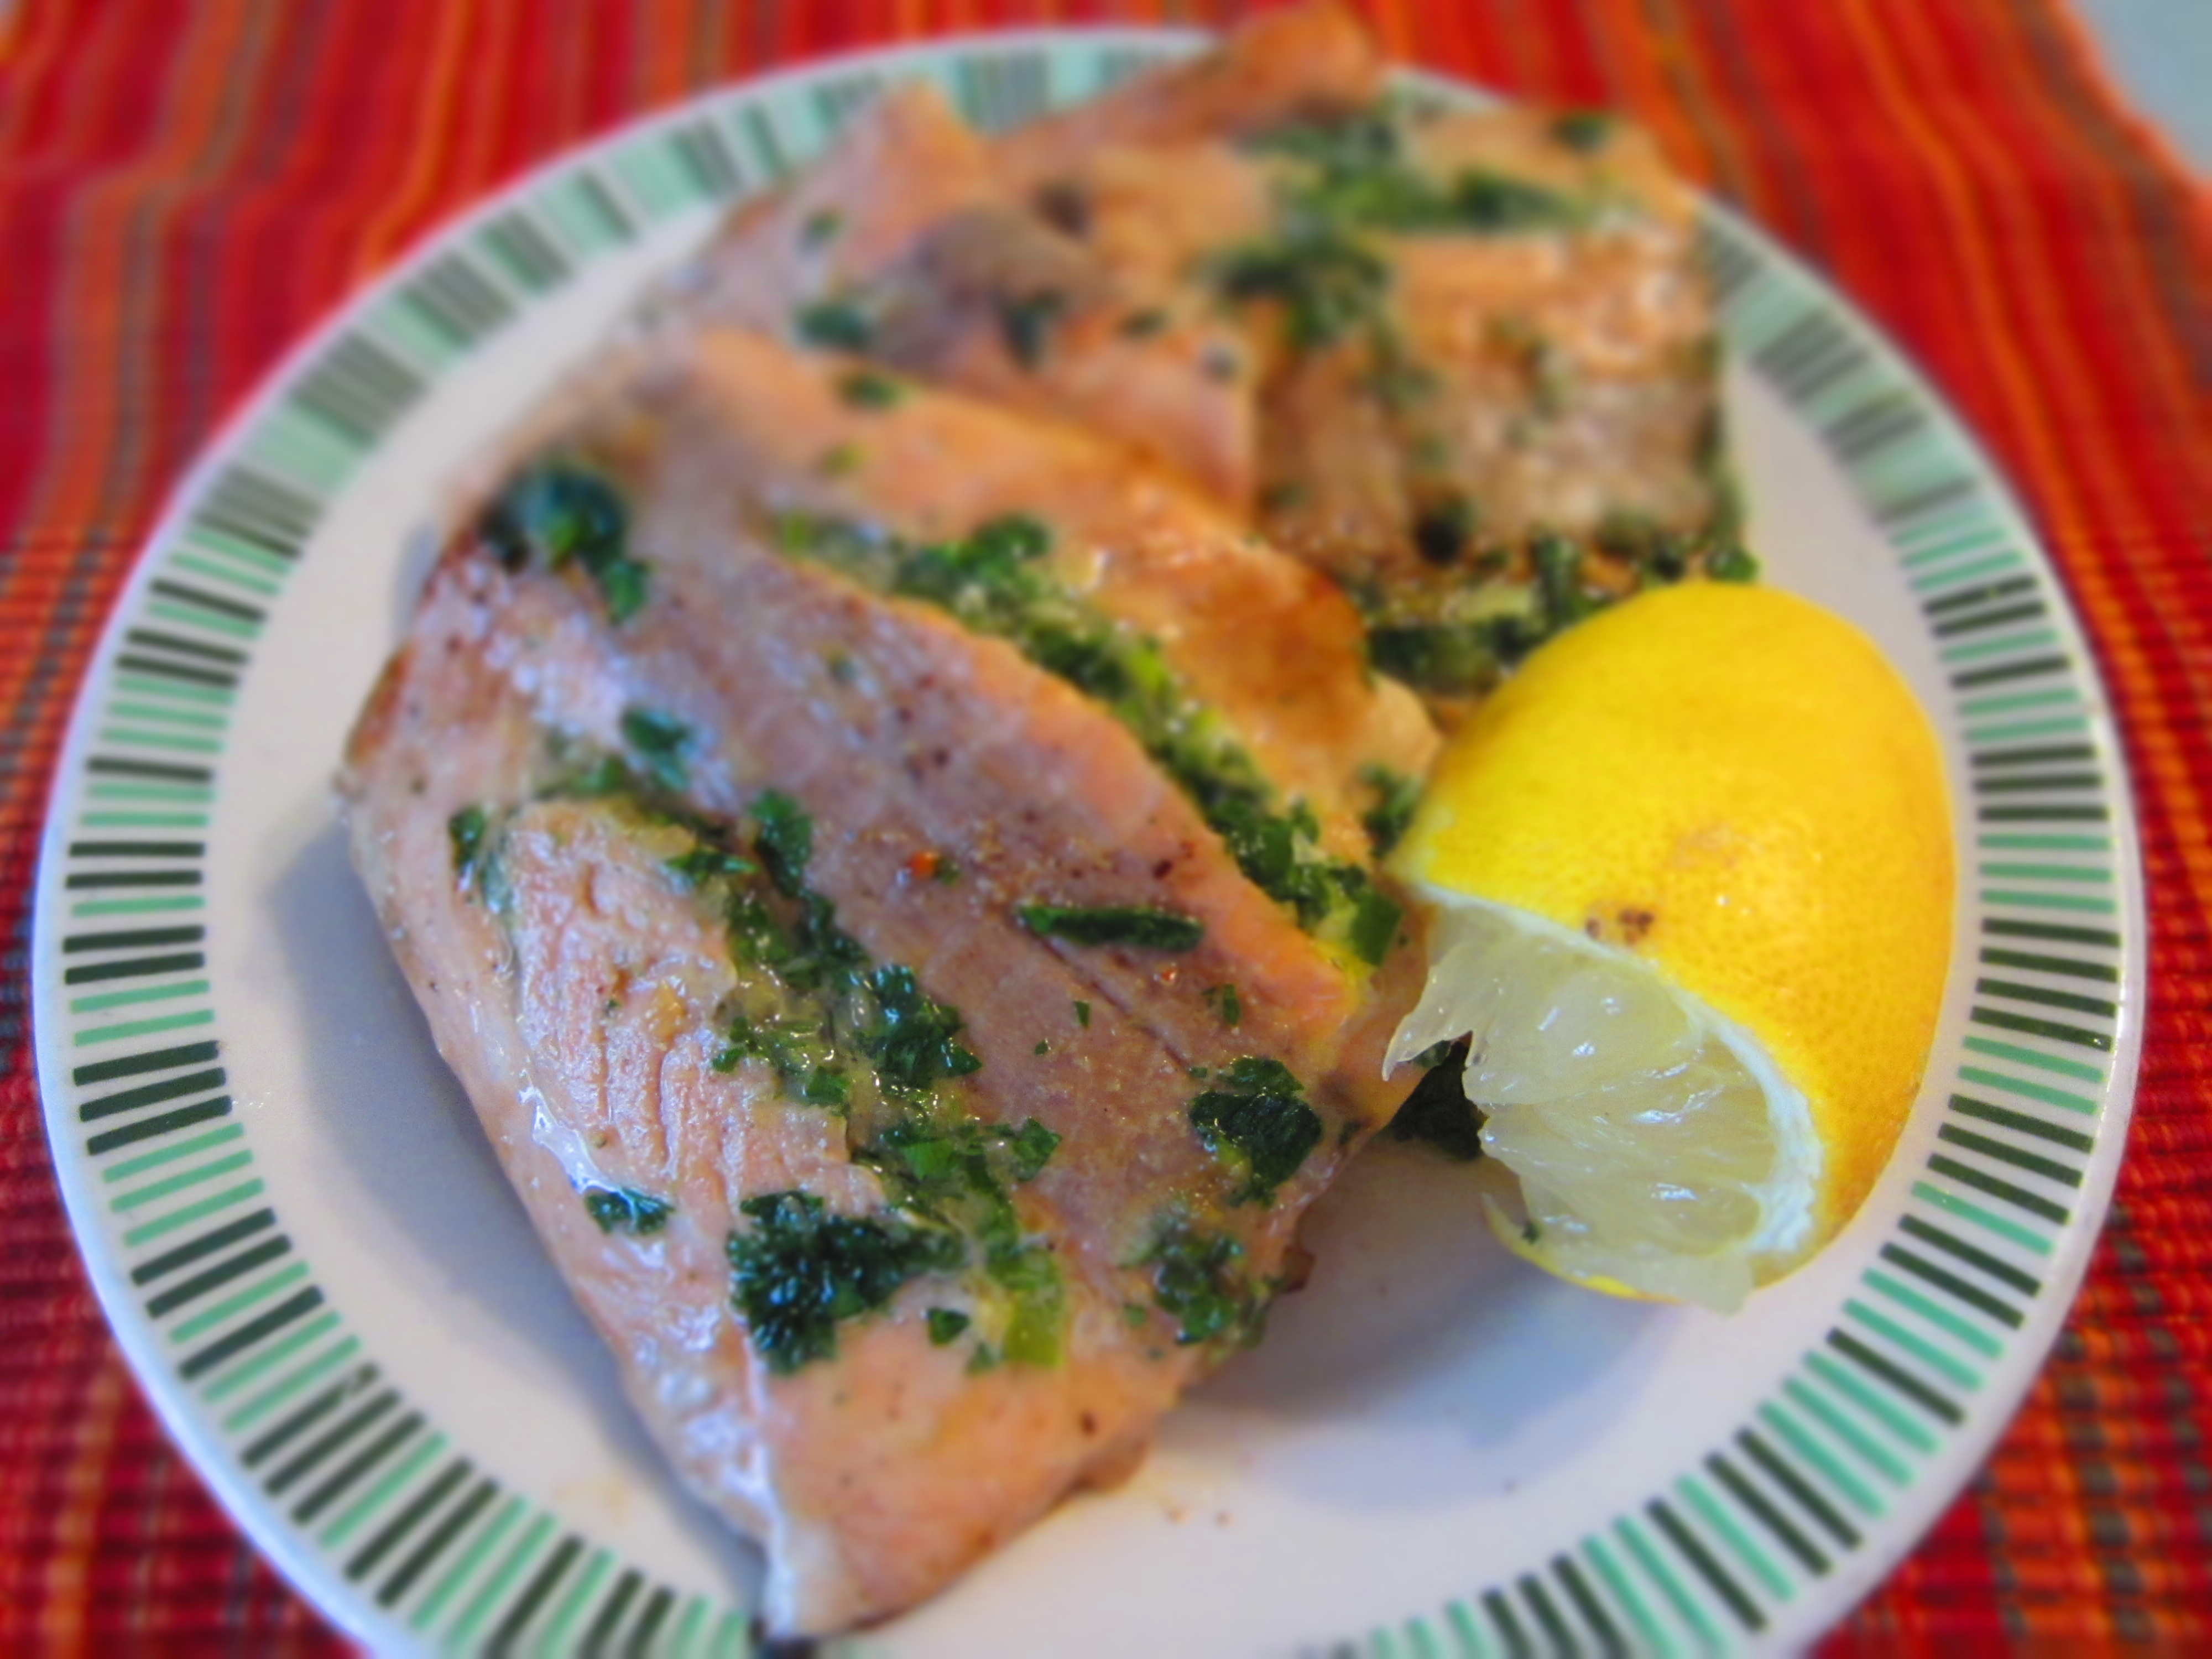 Herb stuffed Salmon with Soy and Honey Glaze